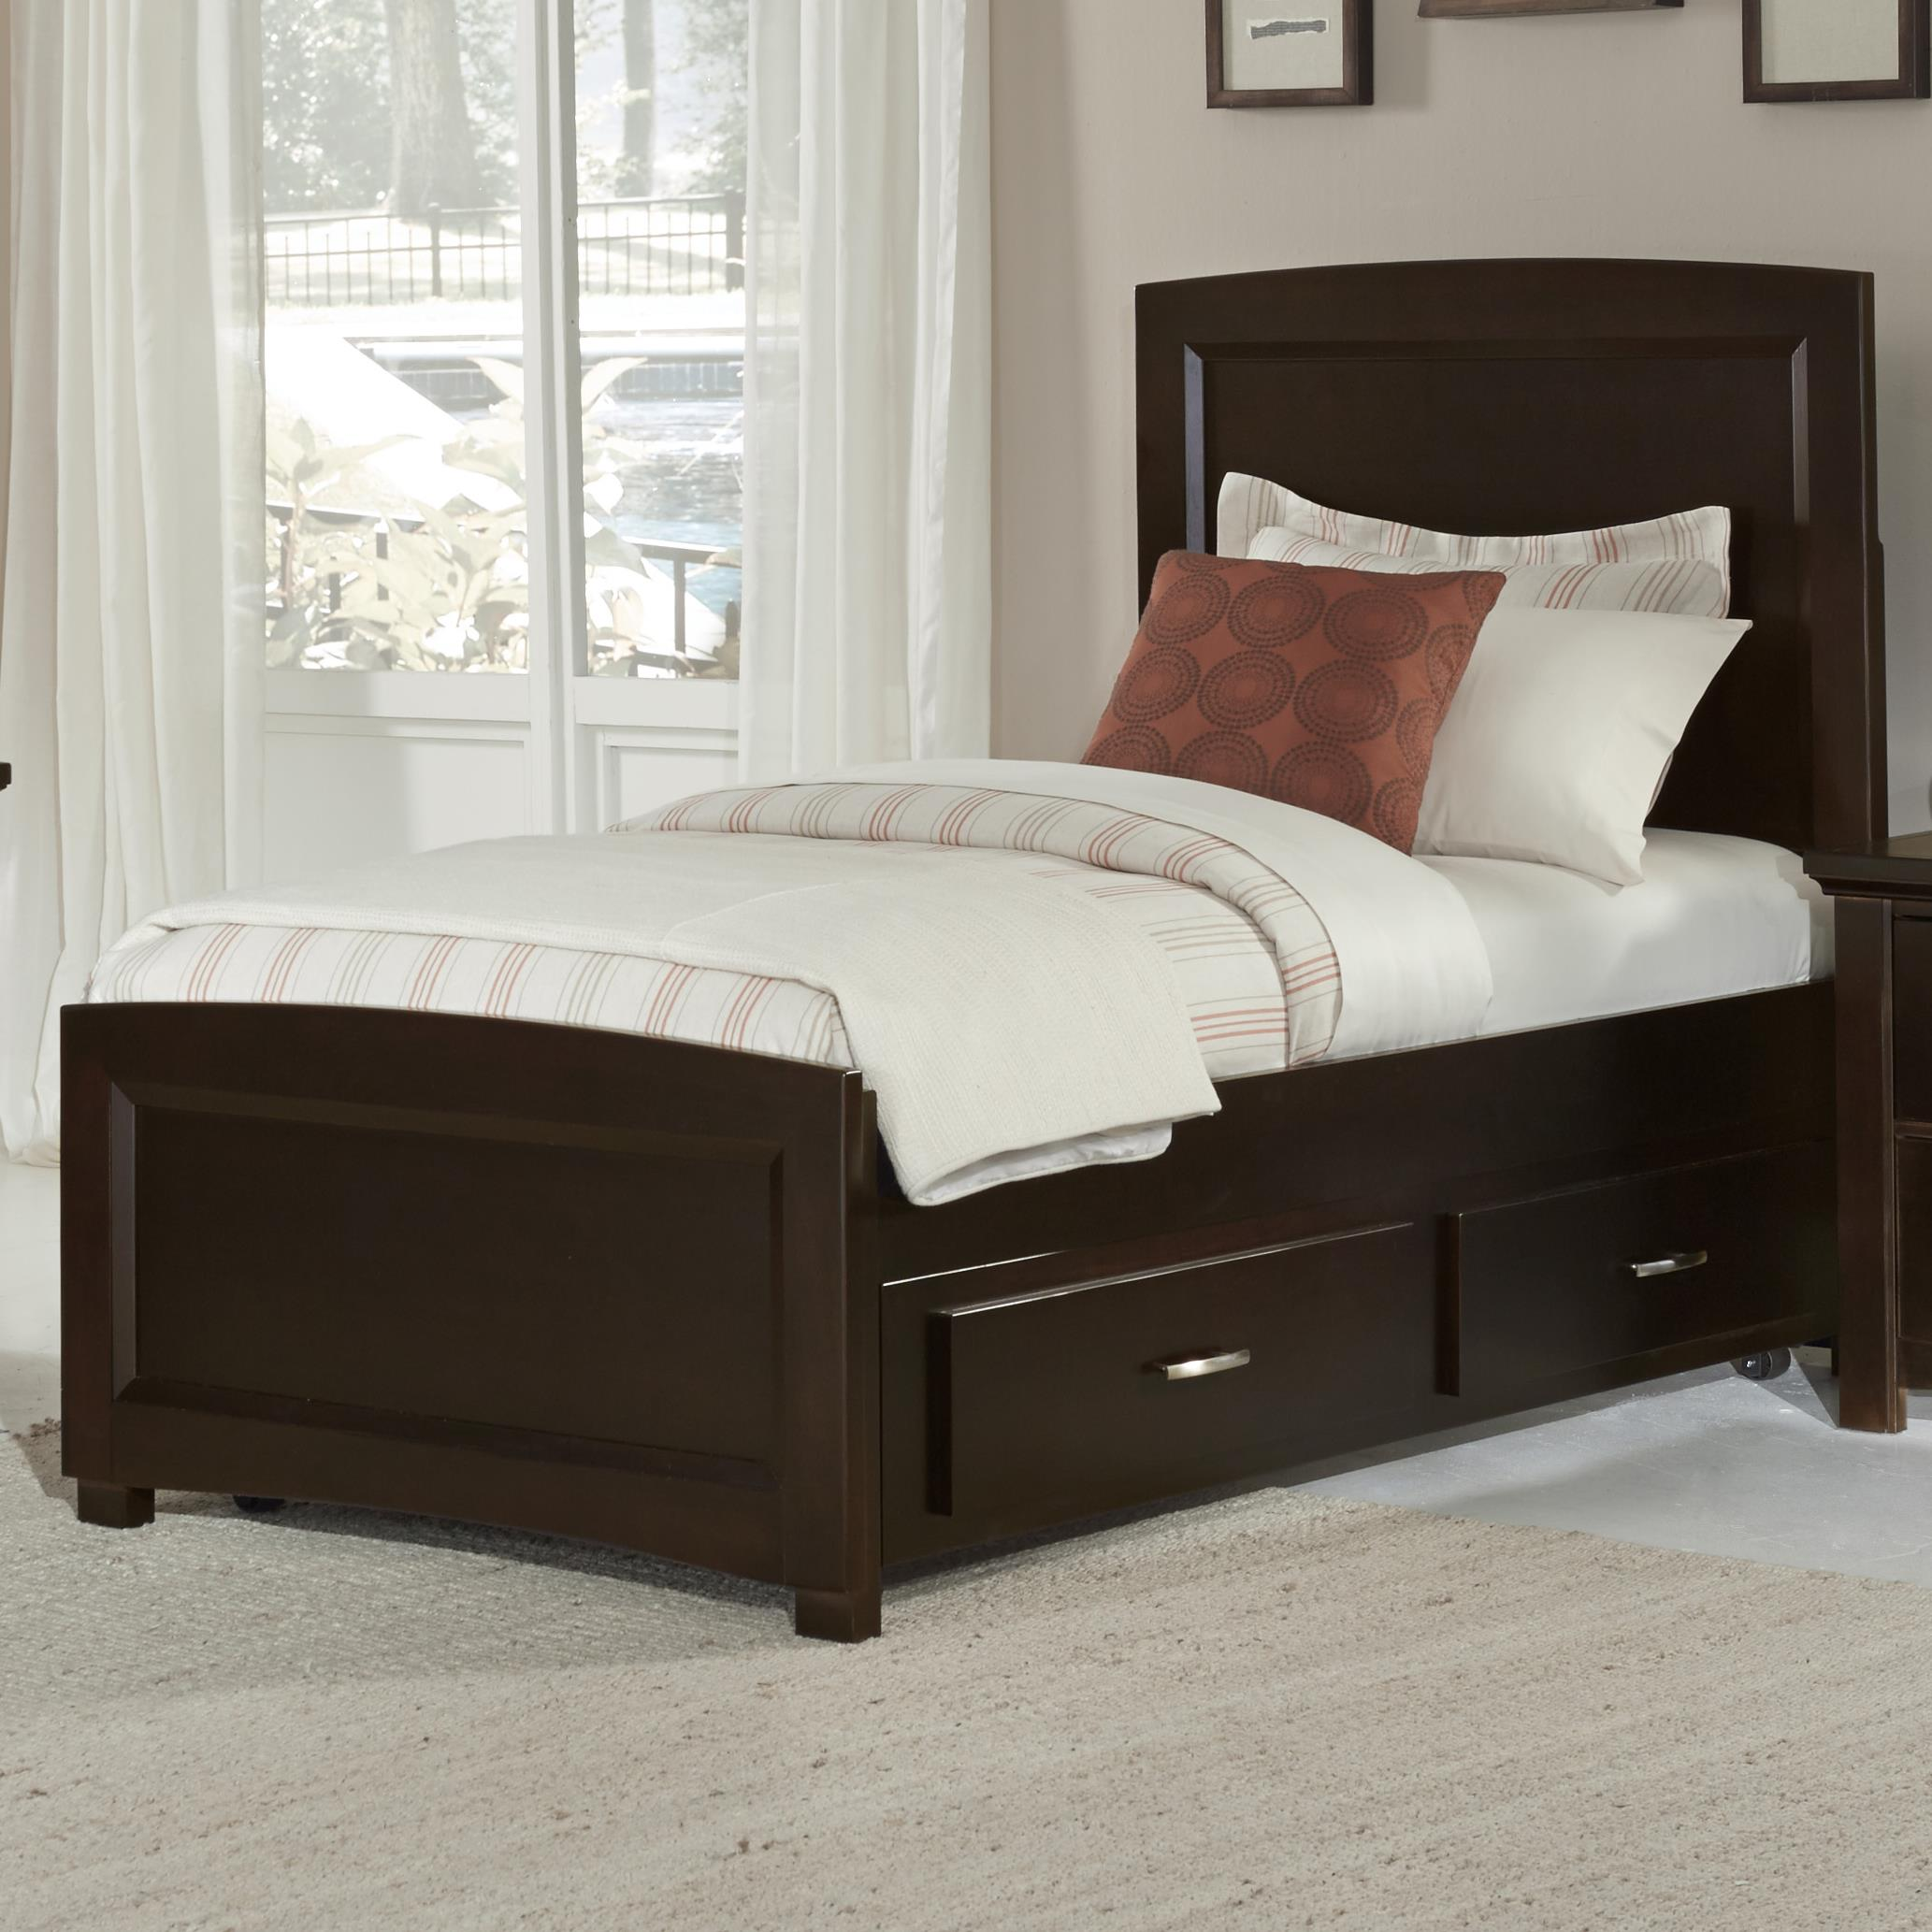 Twin Bed Frame Low Profile Vaughan Bassett Transitions Twin Panel Bed With Trundle